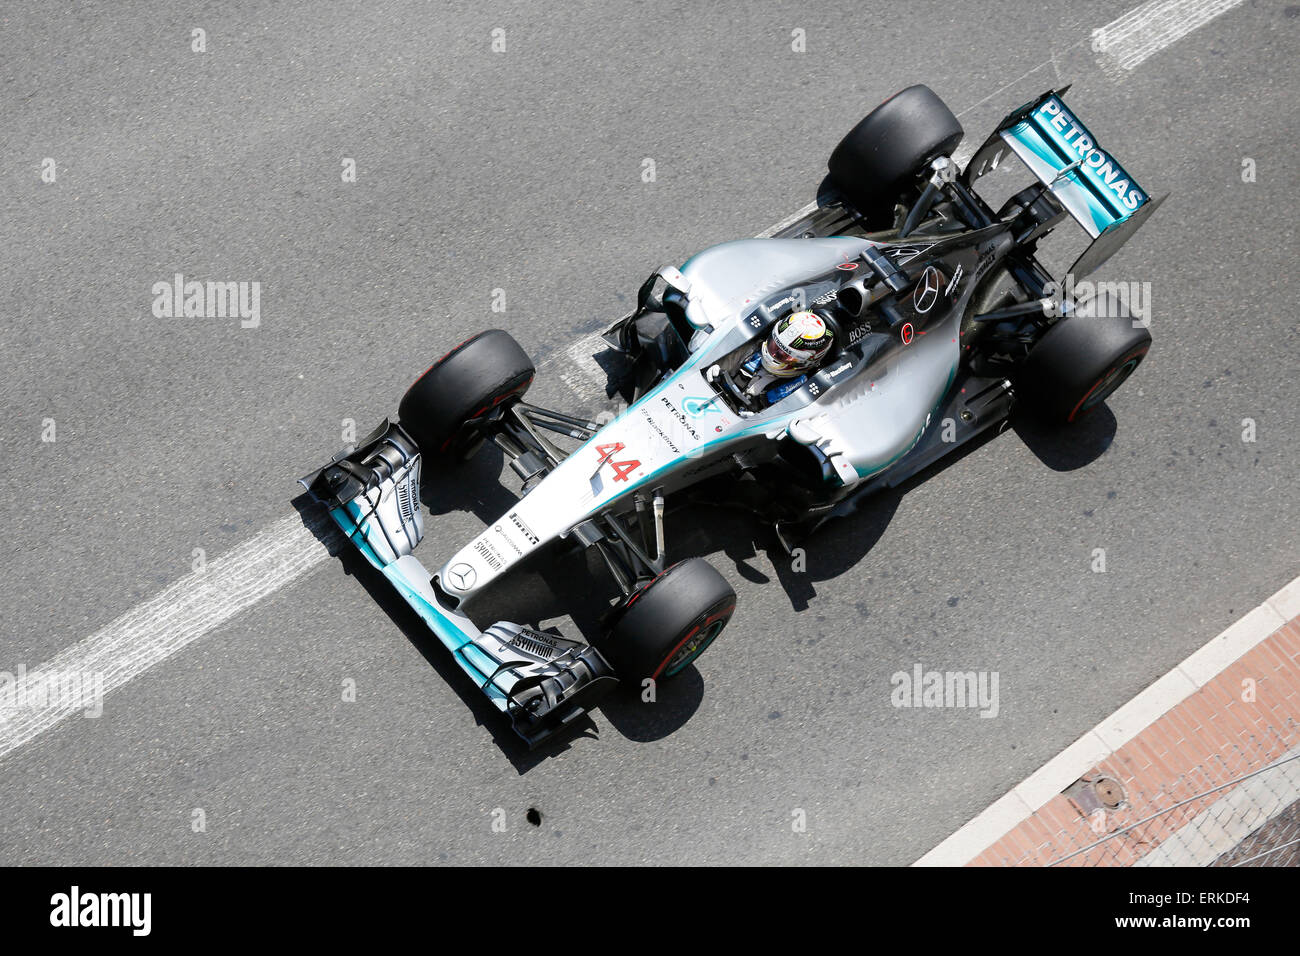 Mercedes racing car with Lewis Hamilton, Formula 1 Grand Prix Monaco 2015, Principality of Monaco - Stock Image